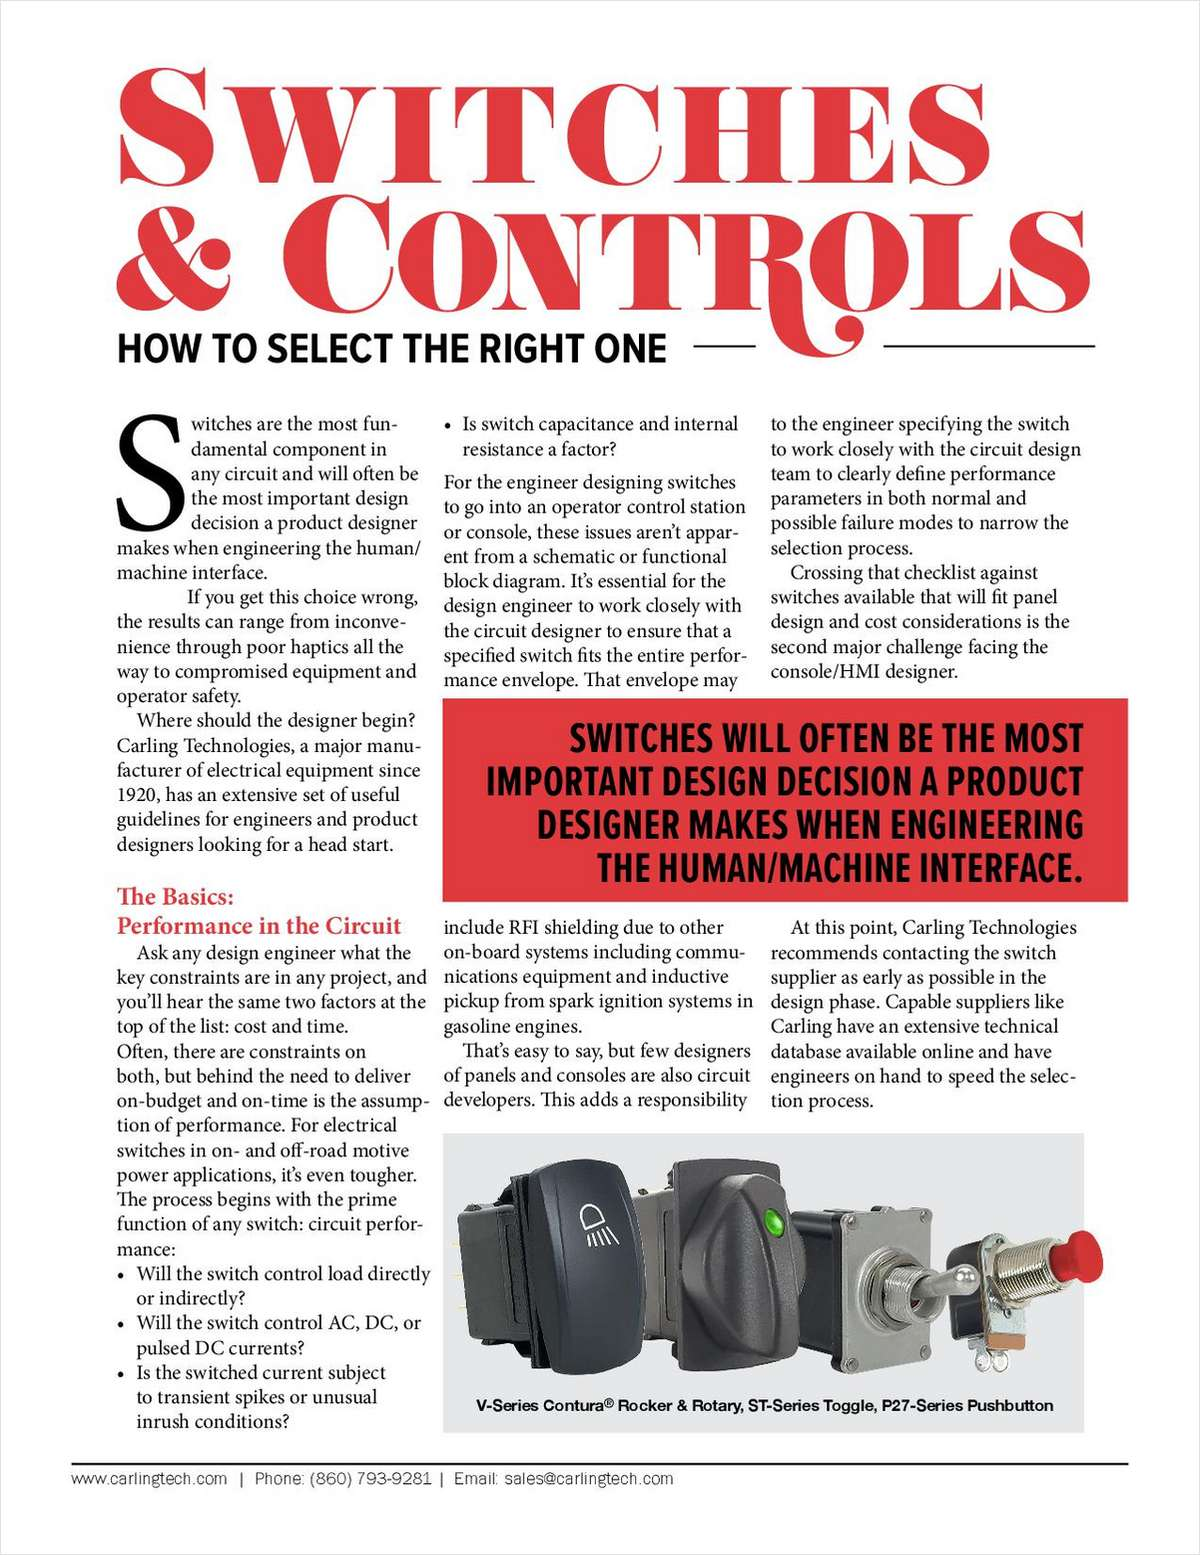 Switches and Controls: How to Select the Right One